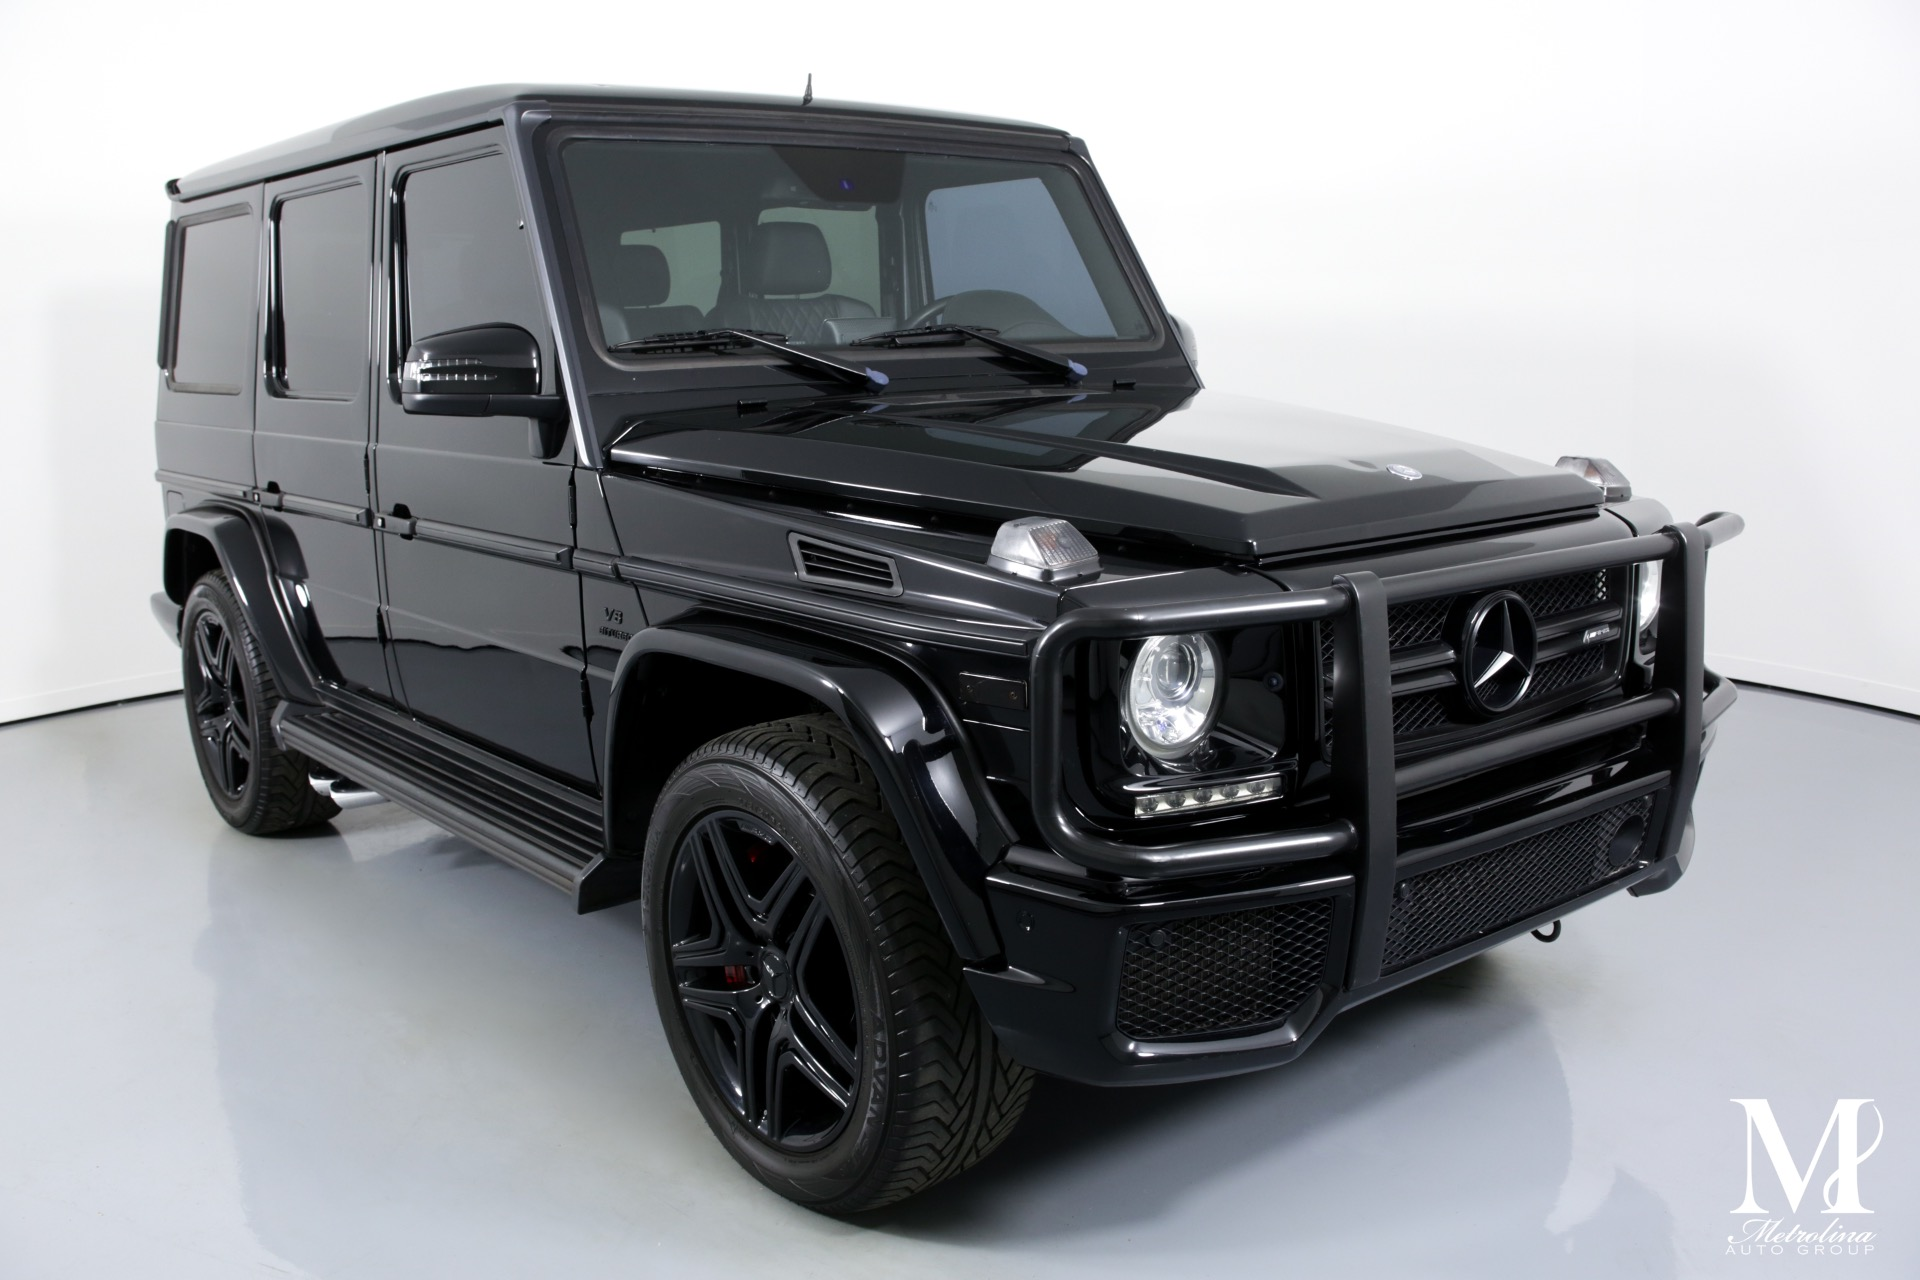 Used 2015 Mercedes-Benz G-Class G 63 AMG for sale $84,996 at Metrolina Auto Group in Charlotte NC 28217 - 2